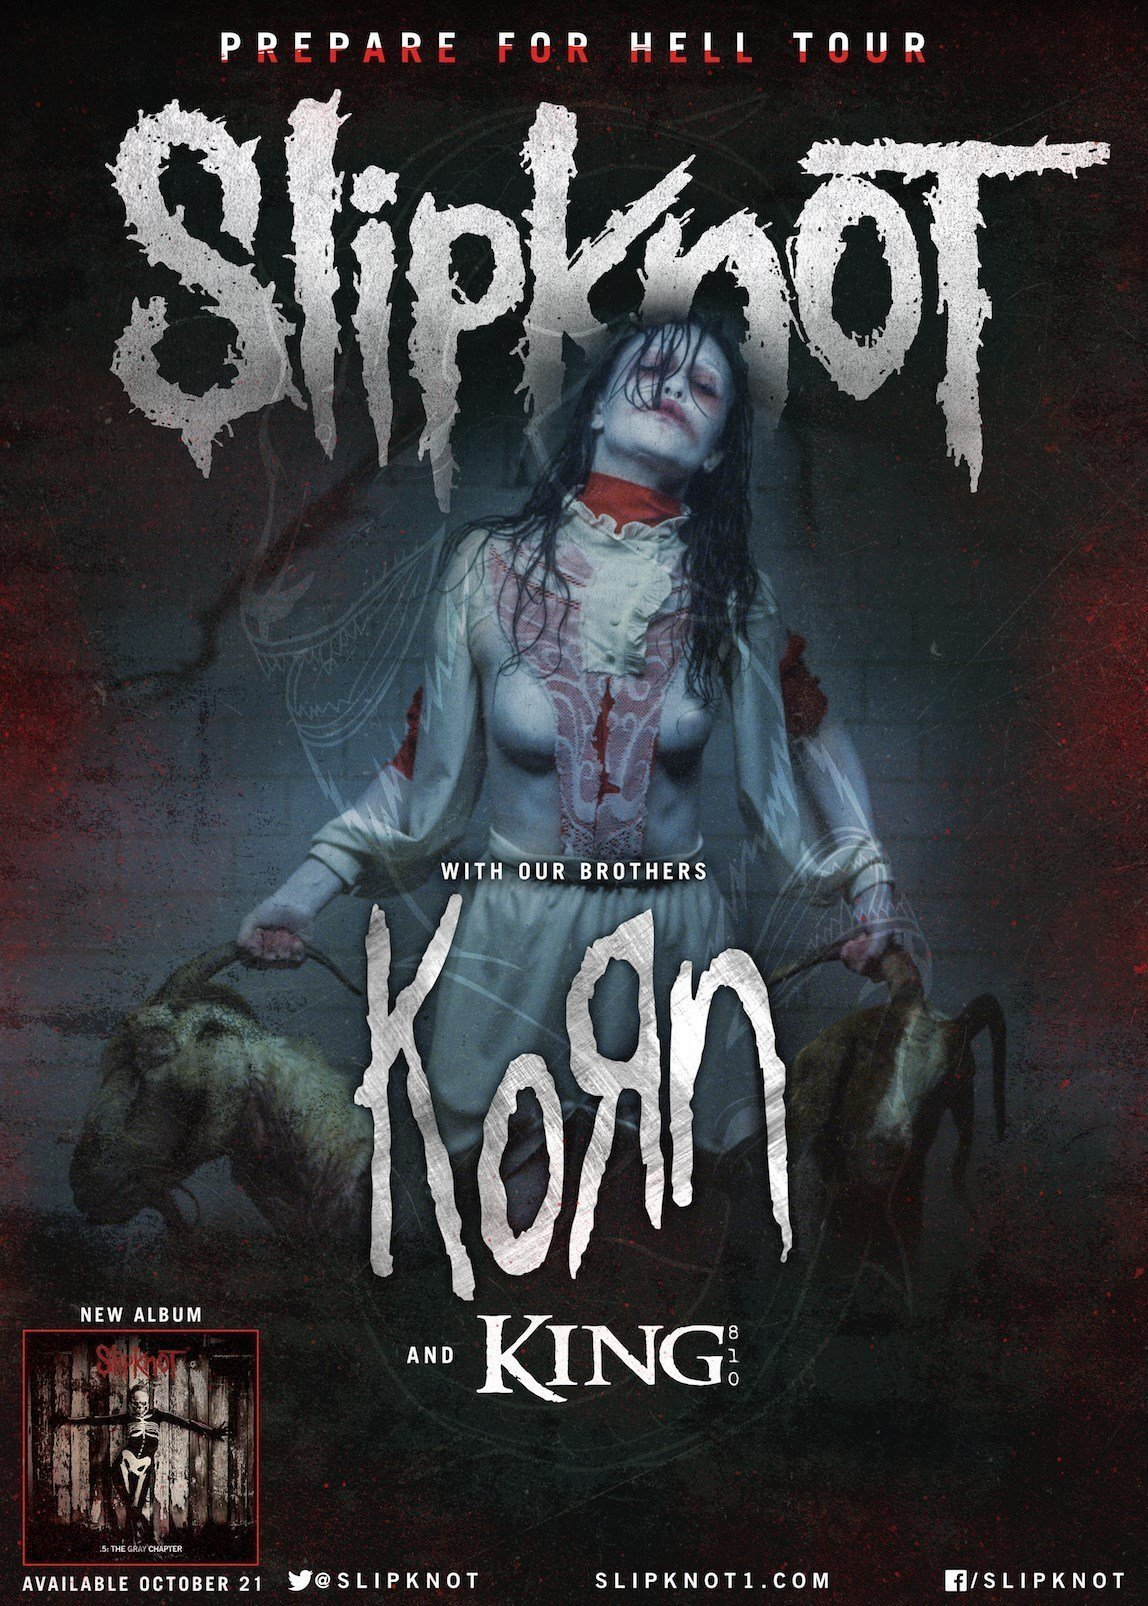 slipknot-korn-tour-poster-vertical-2014